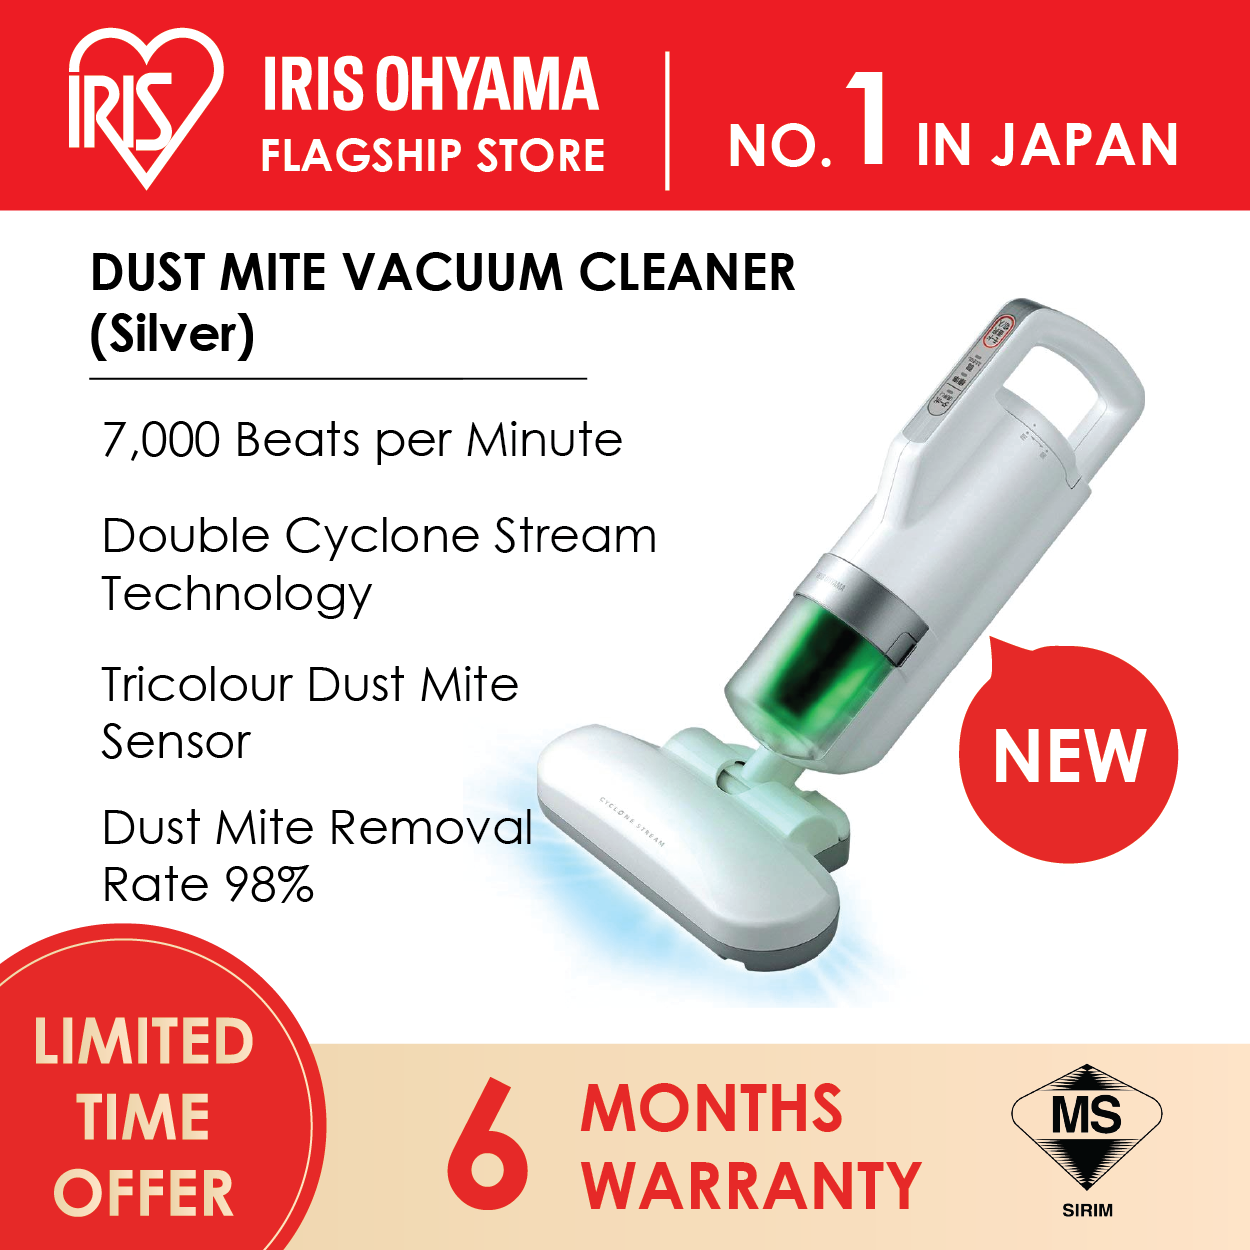 IRIS OHYAMA IC-FAC3 Handheld Dust Mites Bedsheet Vacuum Cleaner (Vibration 7,000 Times / minute) (6 Months Warranty) - SILVER Color